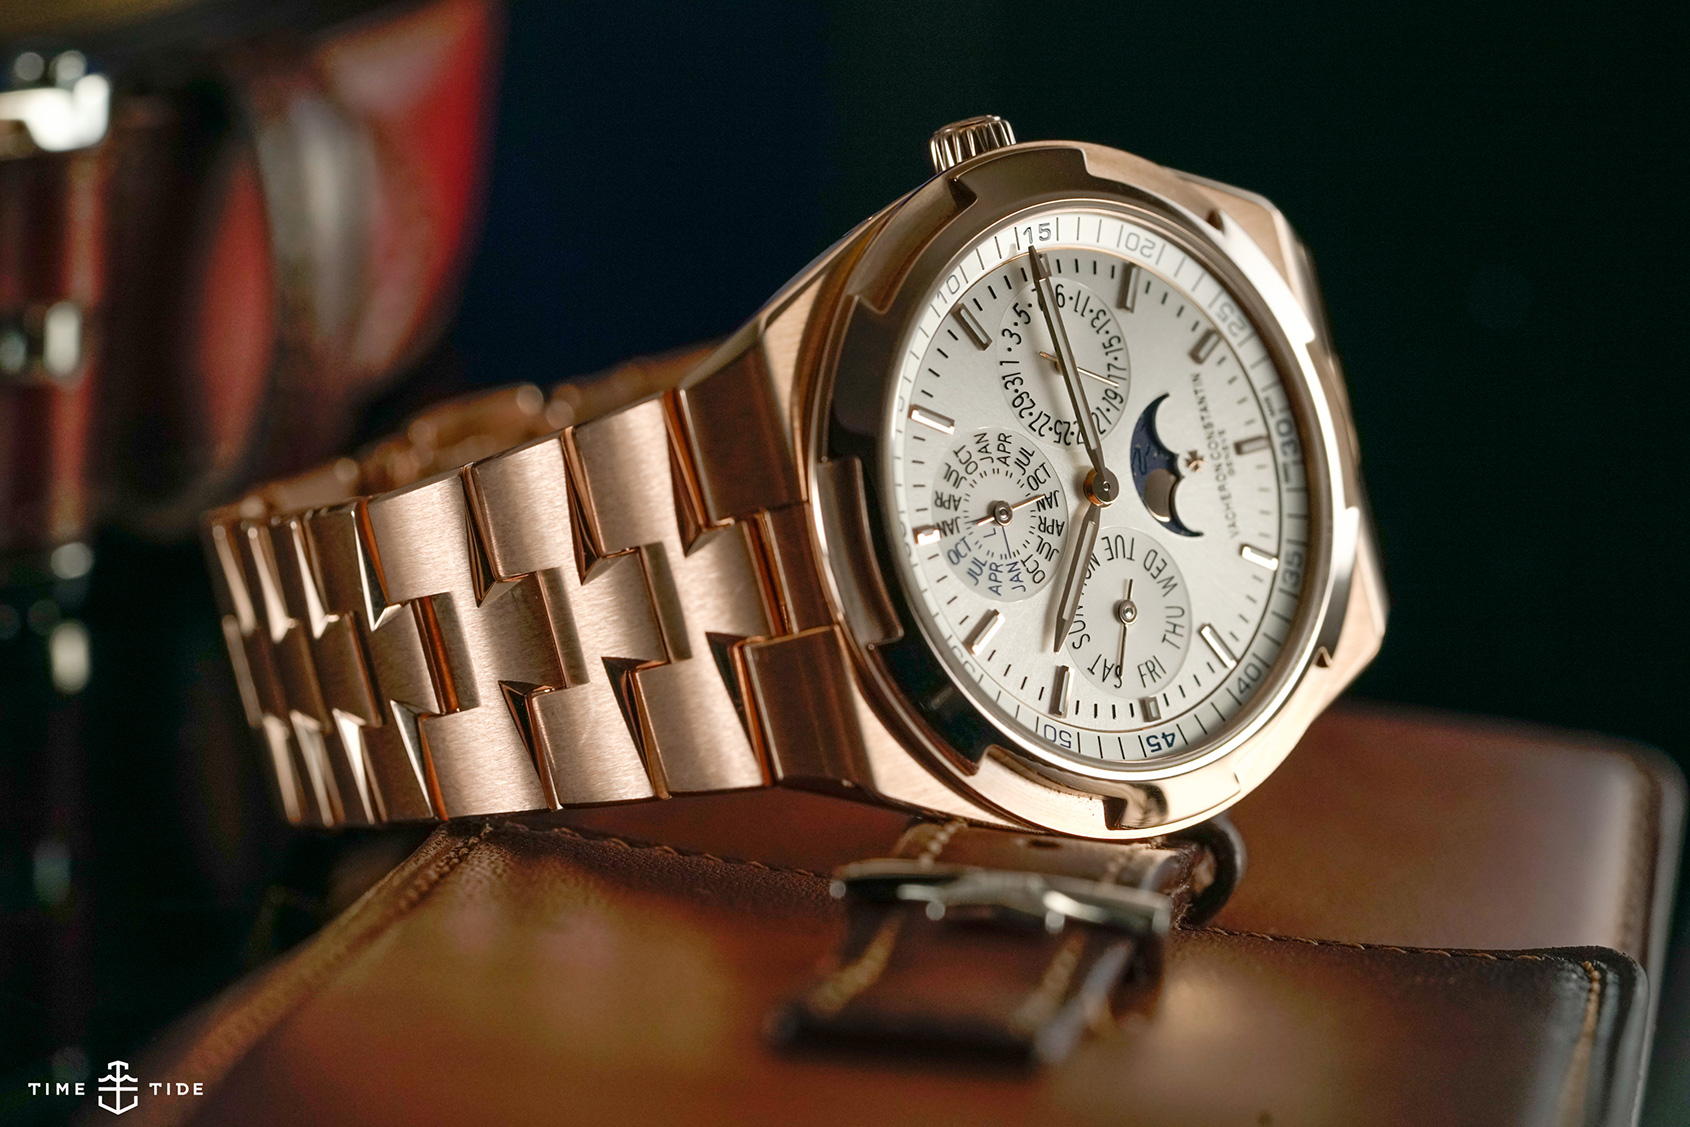 Vacheron Constantin Overseas Perpetual Calendar Ultra-Thin Review